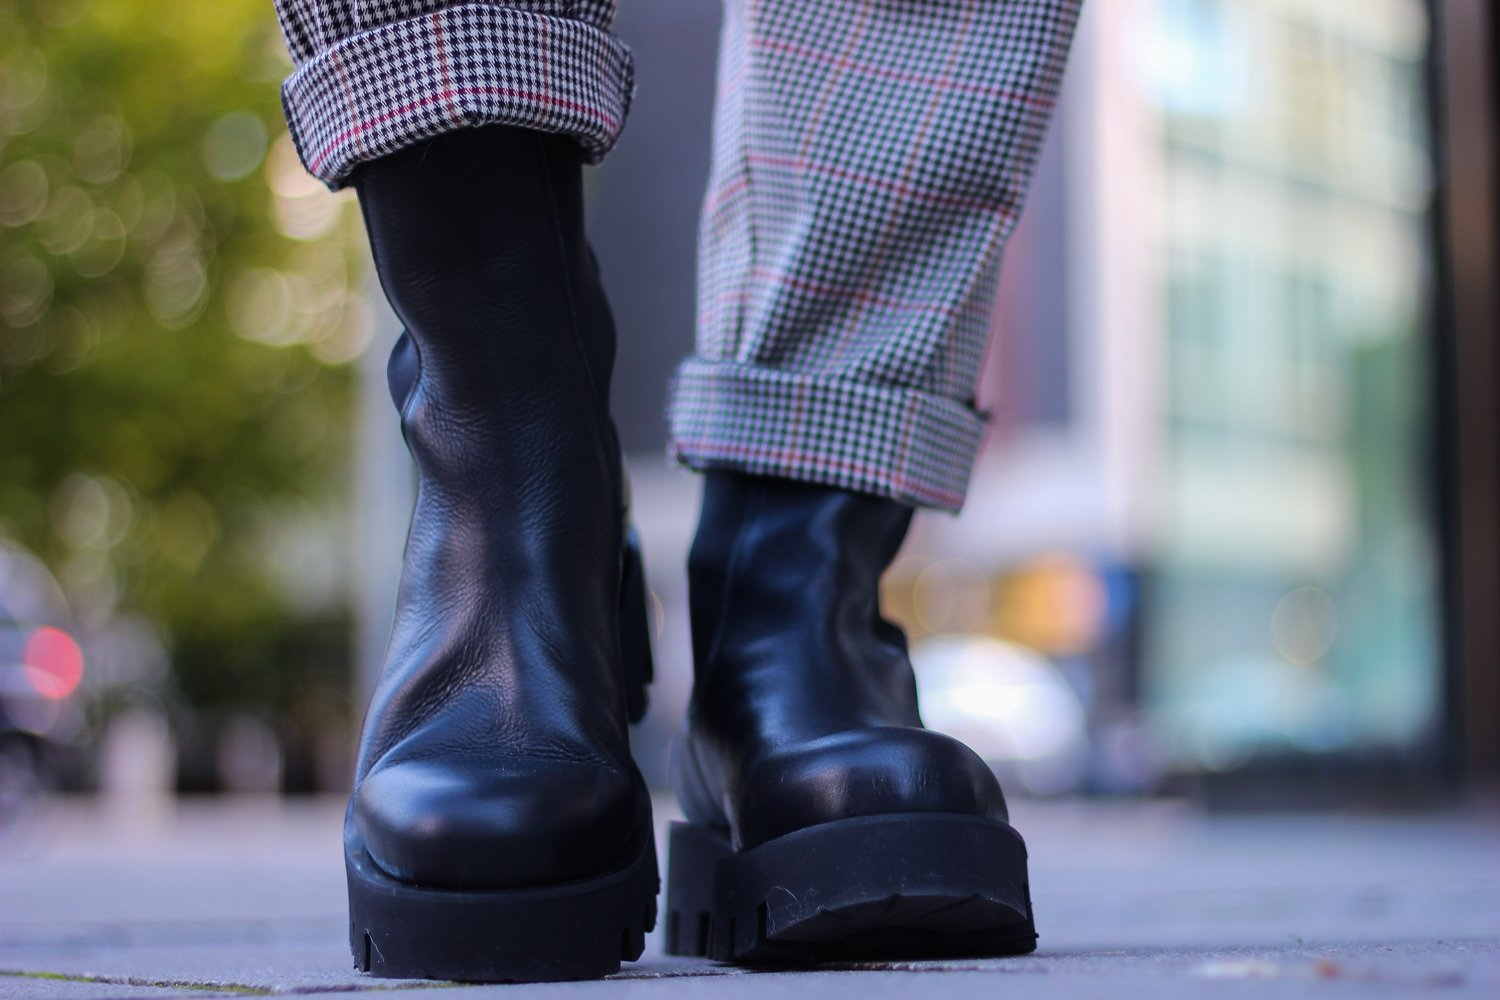 conny doll lifestyle: Herbstlook, Musthave, Boots, derbe Stiefel, Sohle